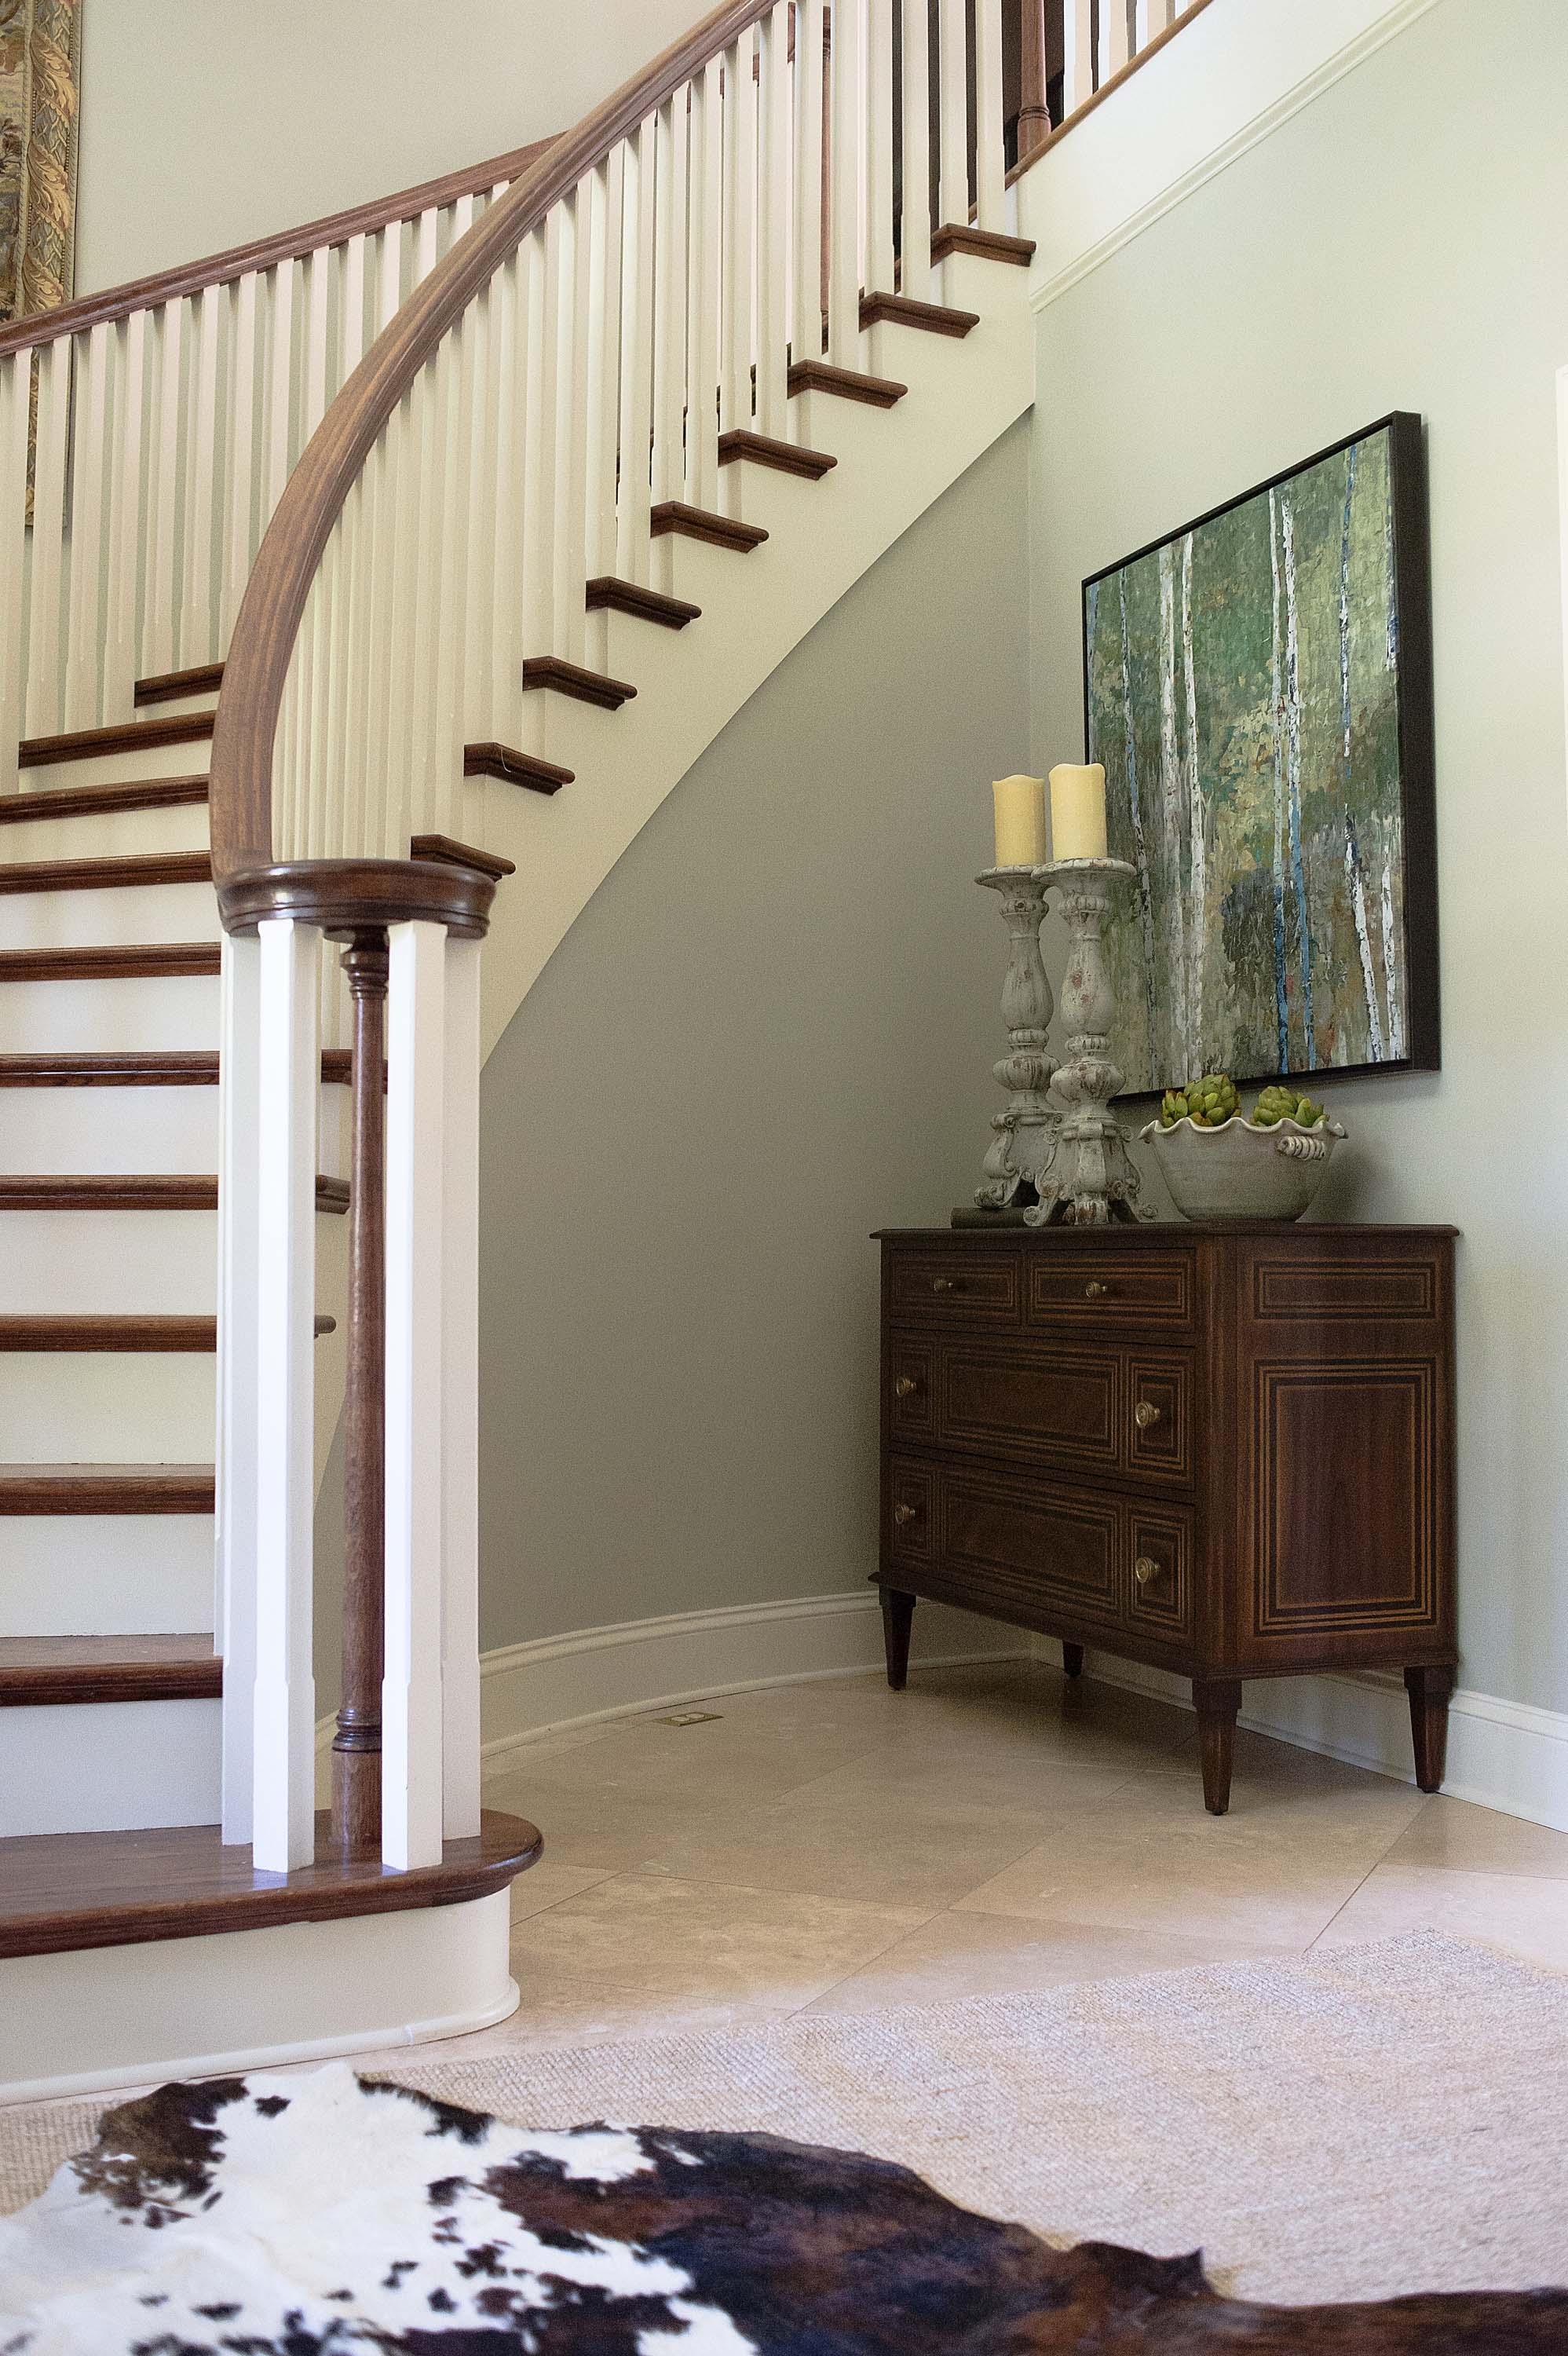 House interior with wooden staircase, vintage style drawer and frame on the wall